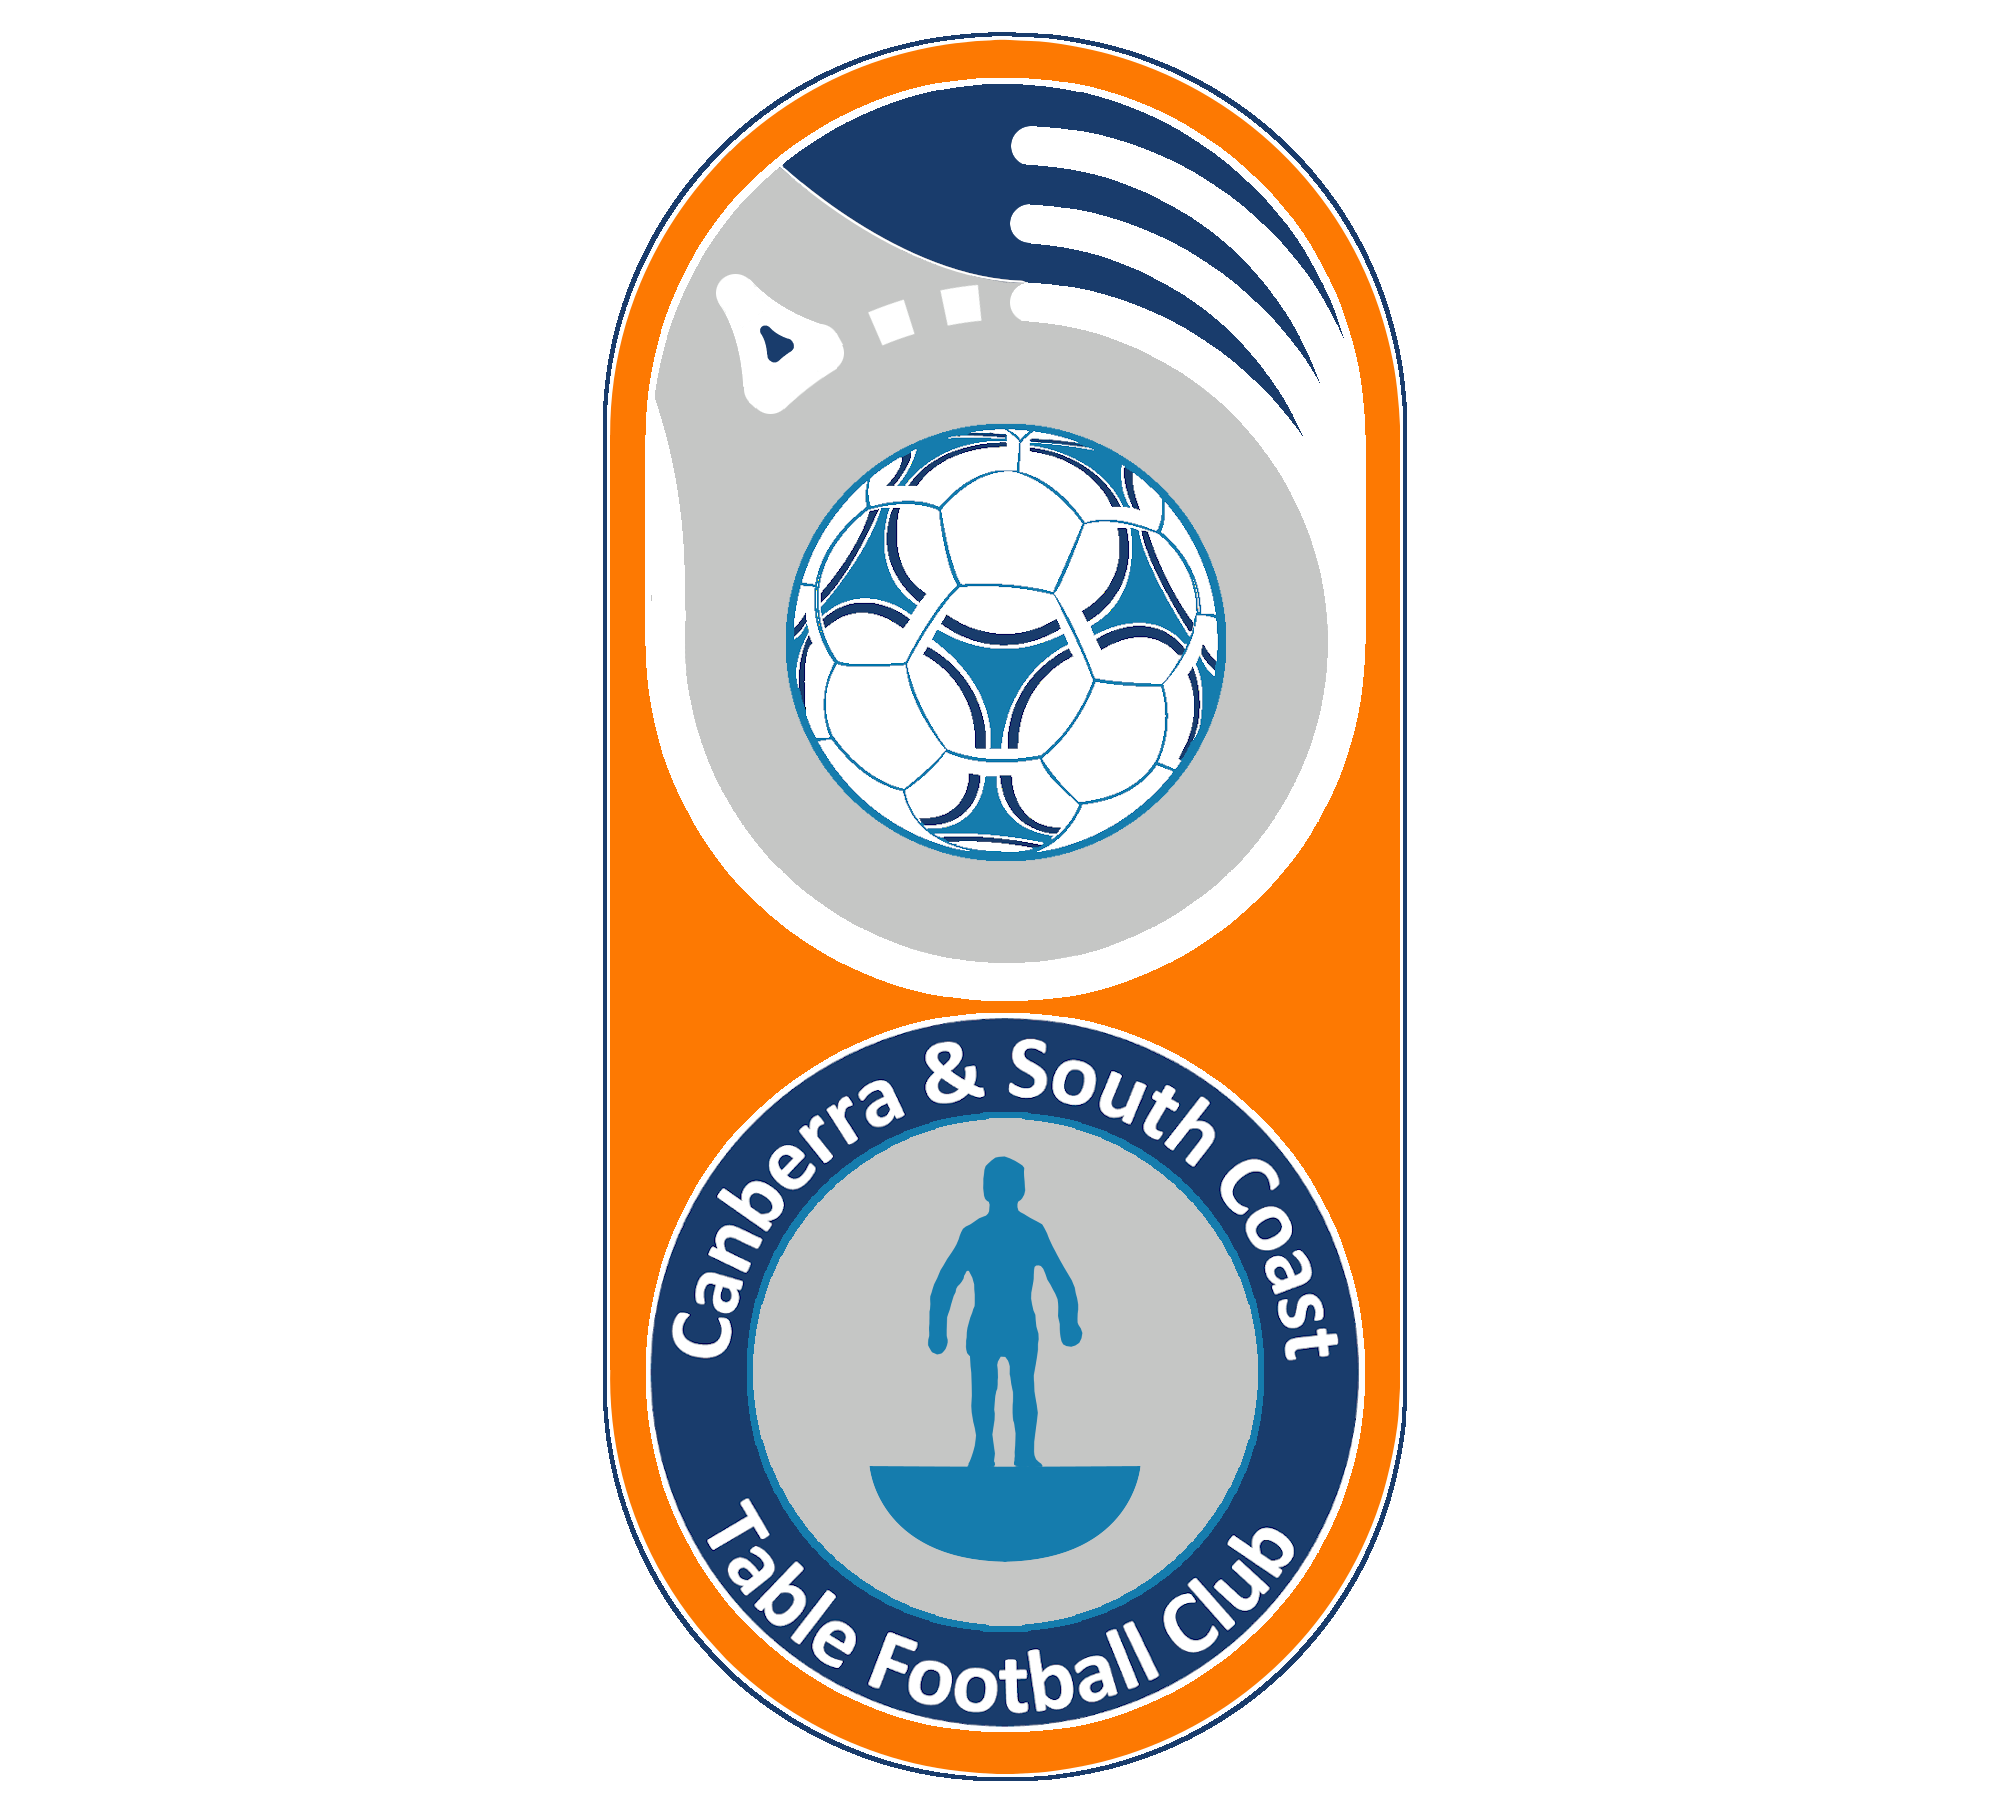 canberra south coast tfc logo